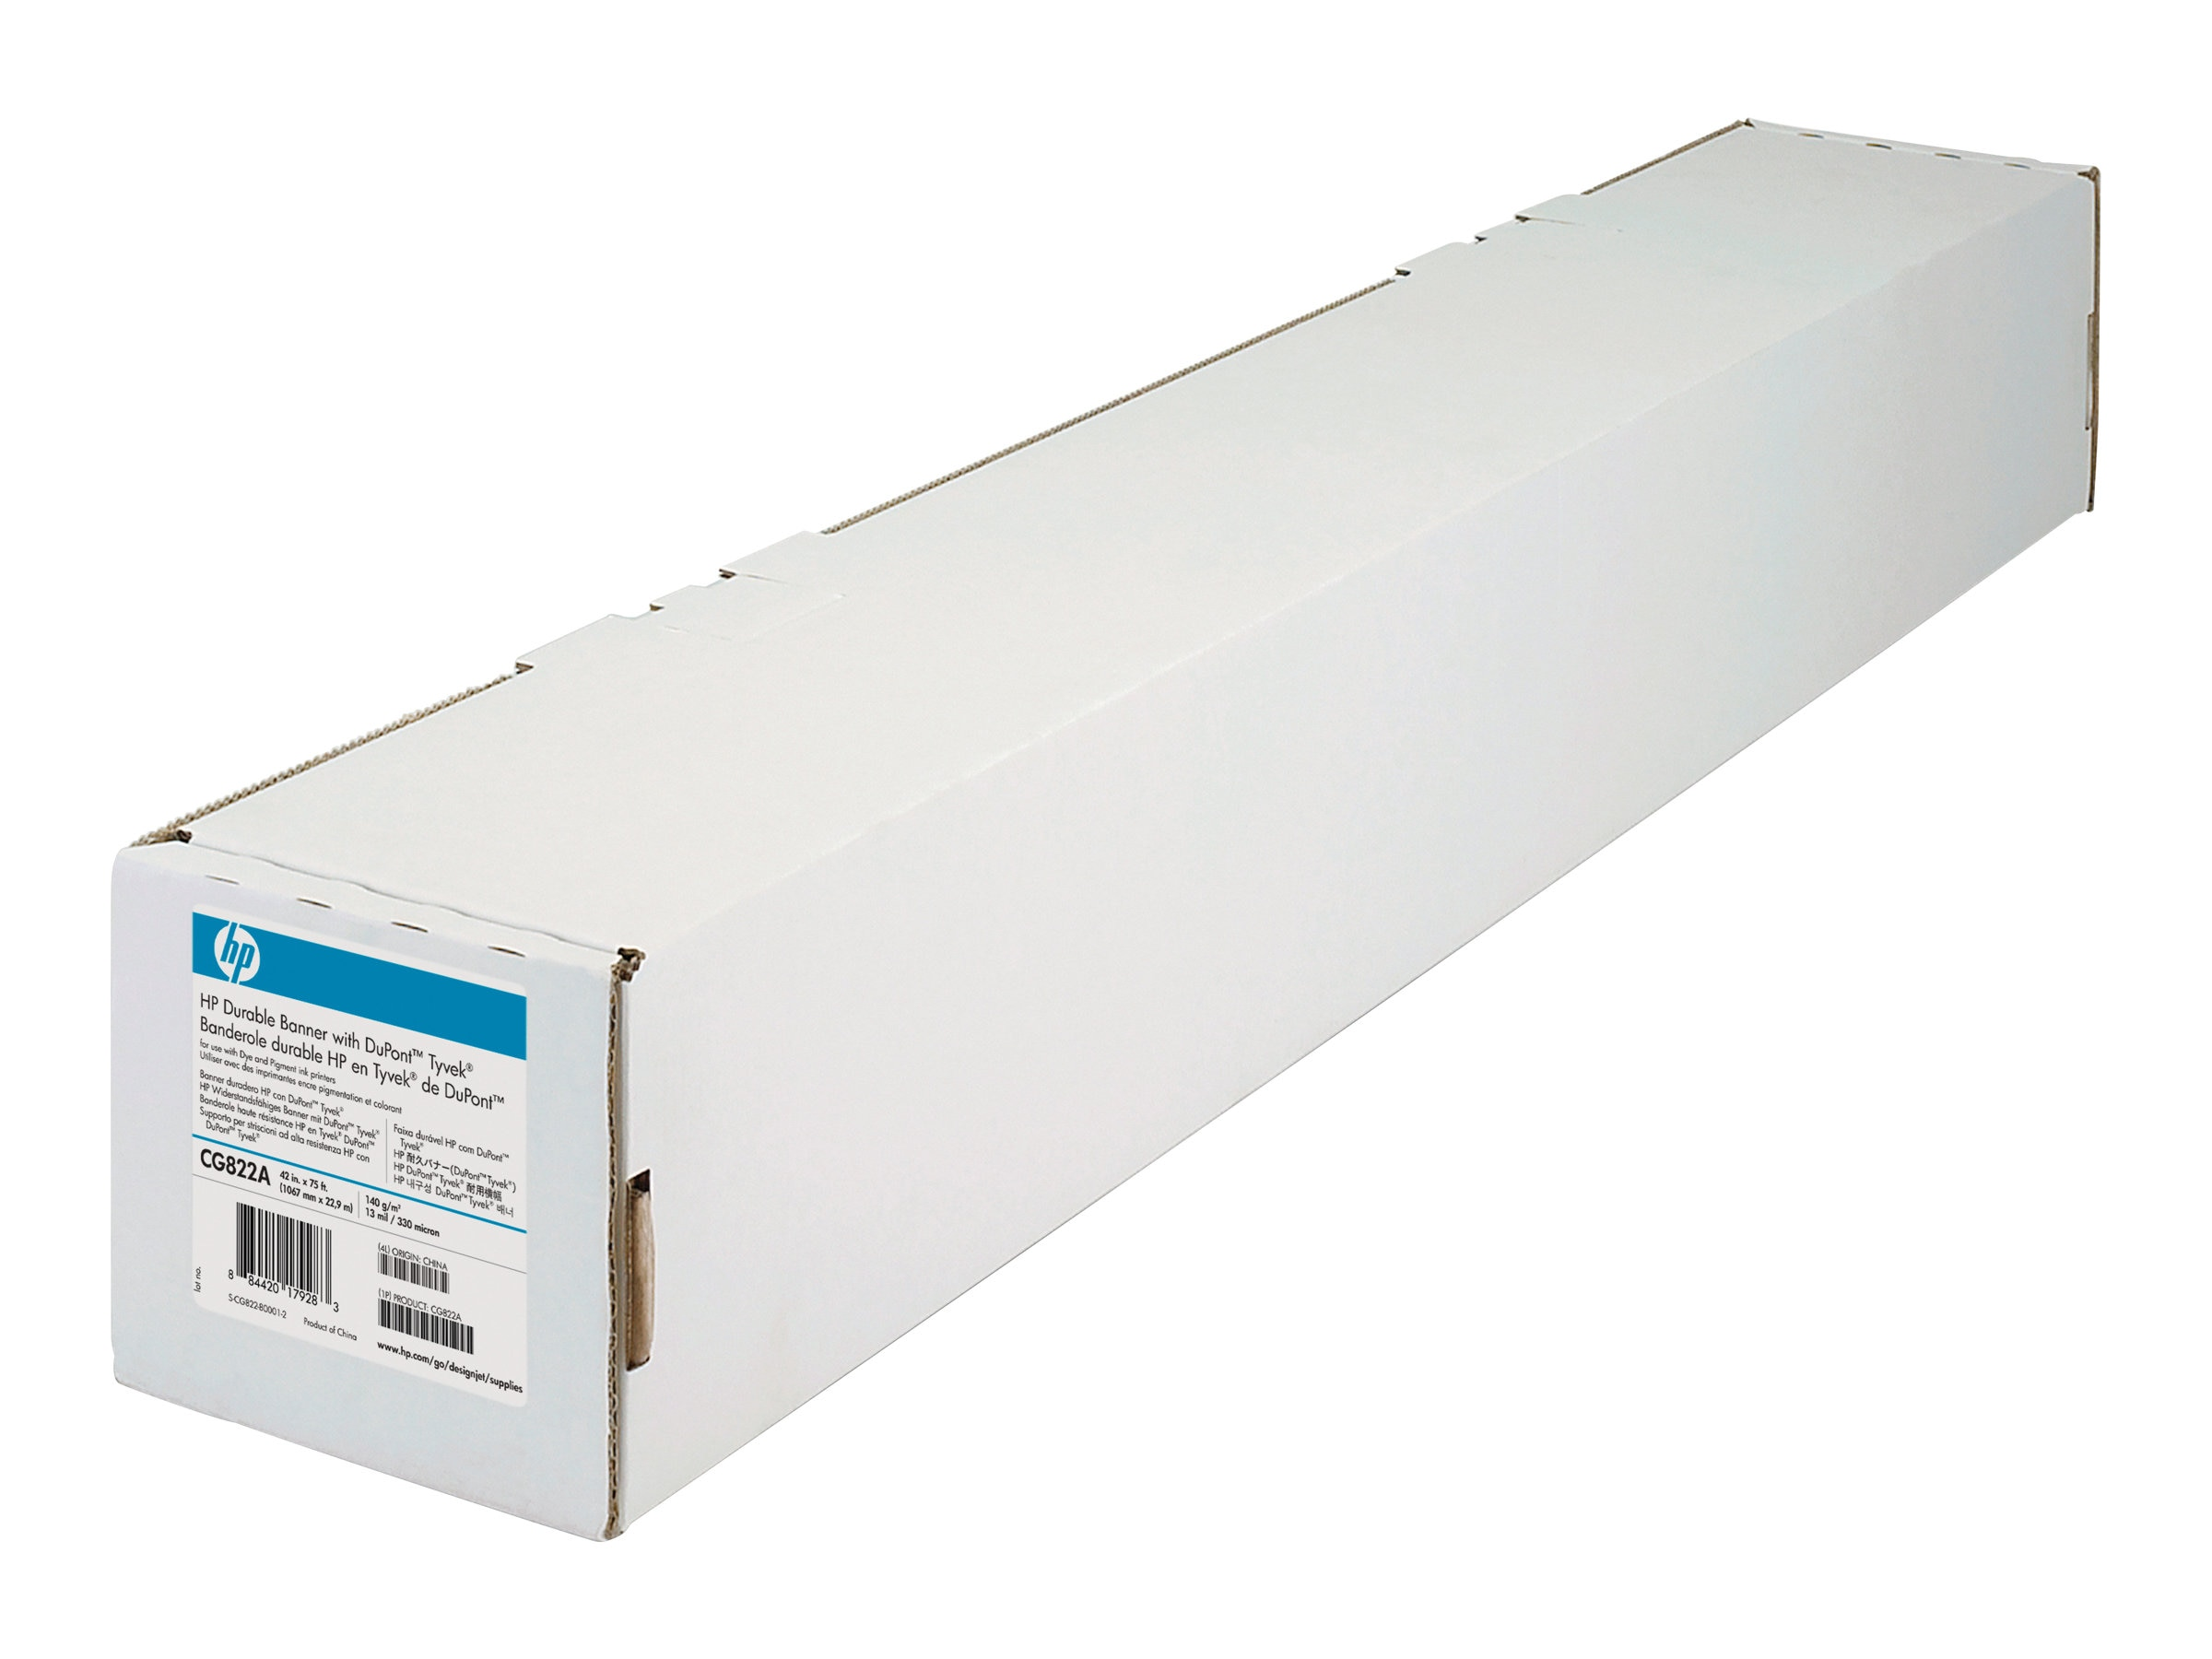 HP 36 x 75' Durable Banner Paper w  DuPont Tyvek (2-pack)